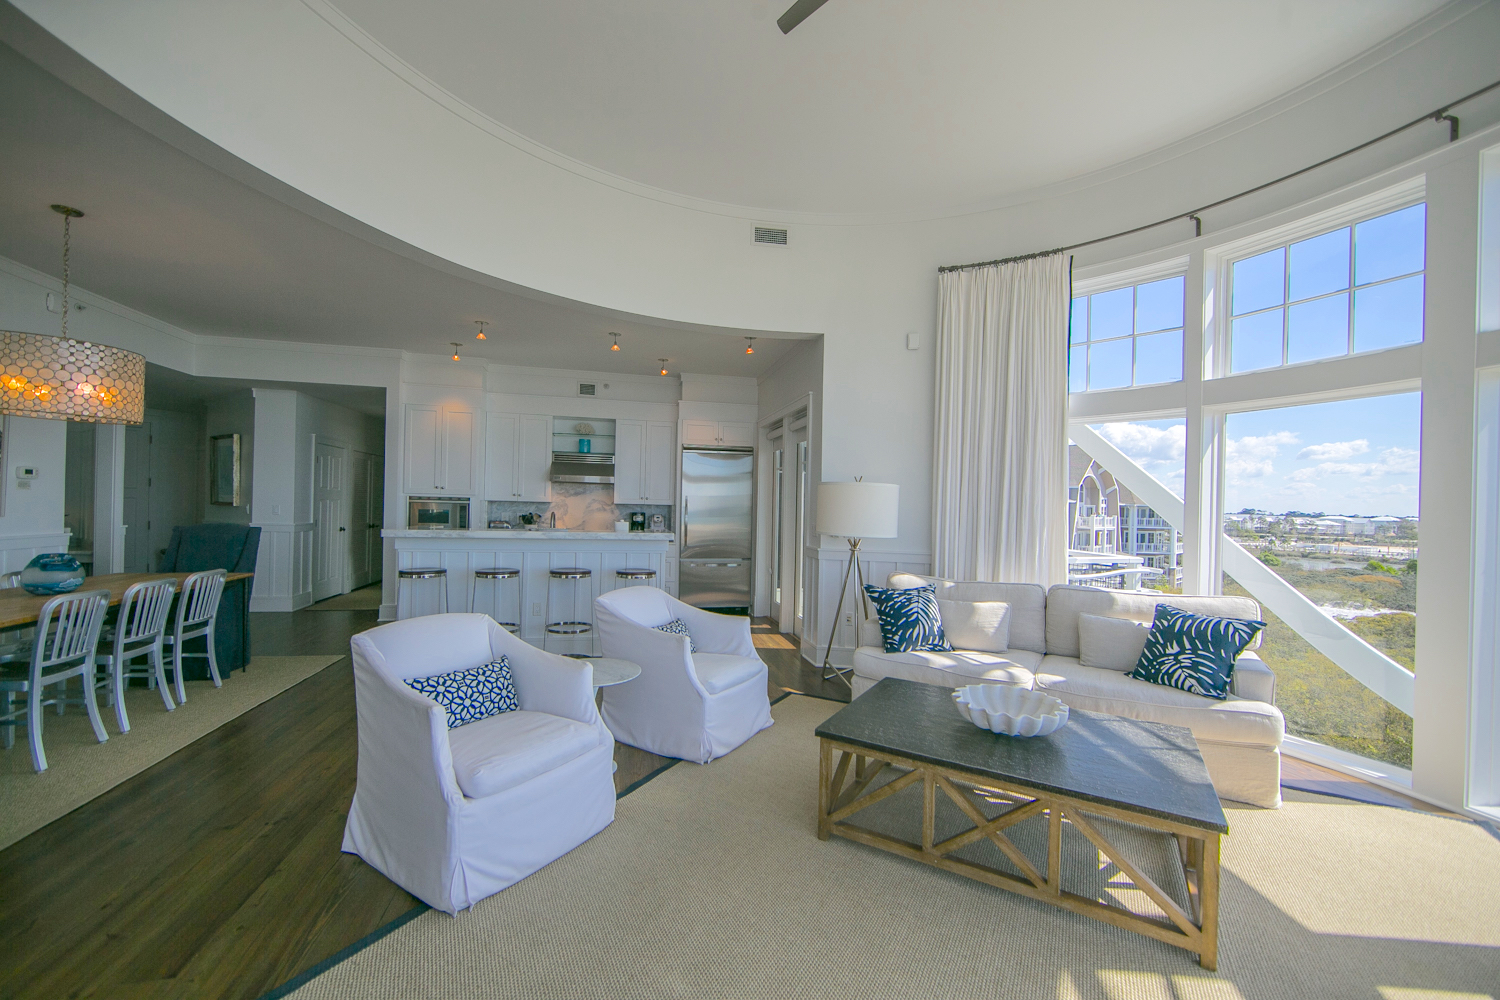 Wonderful open concept space that allows you to take in the view from any vantage point in the condo